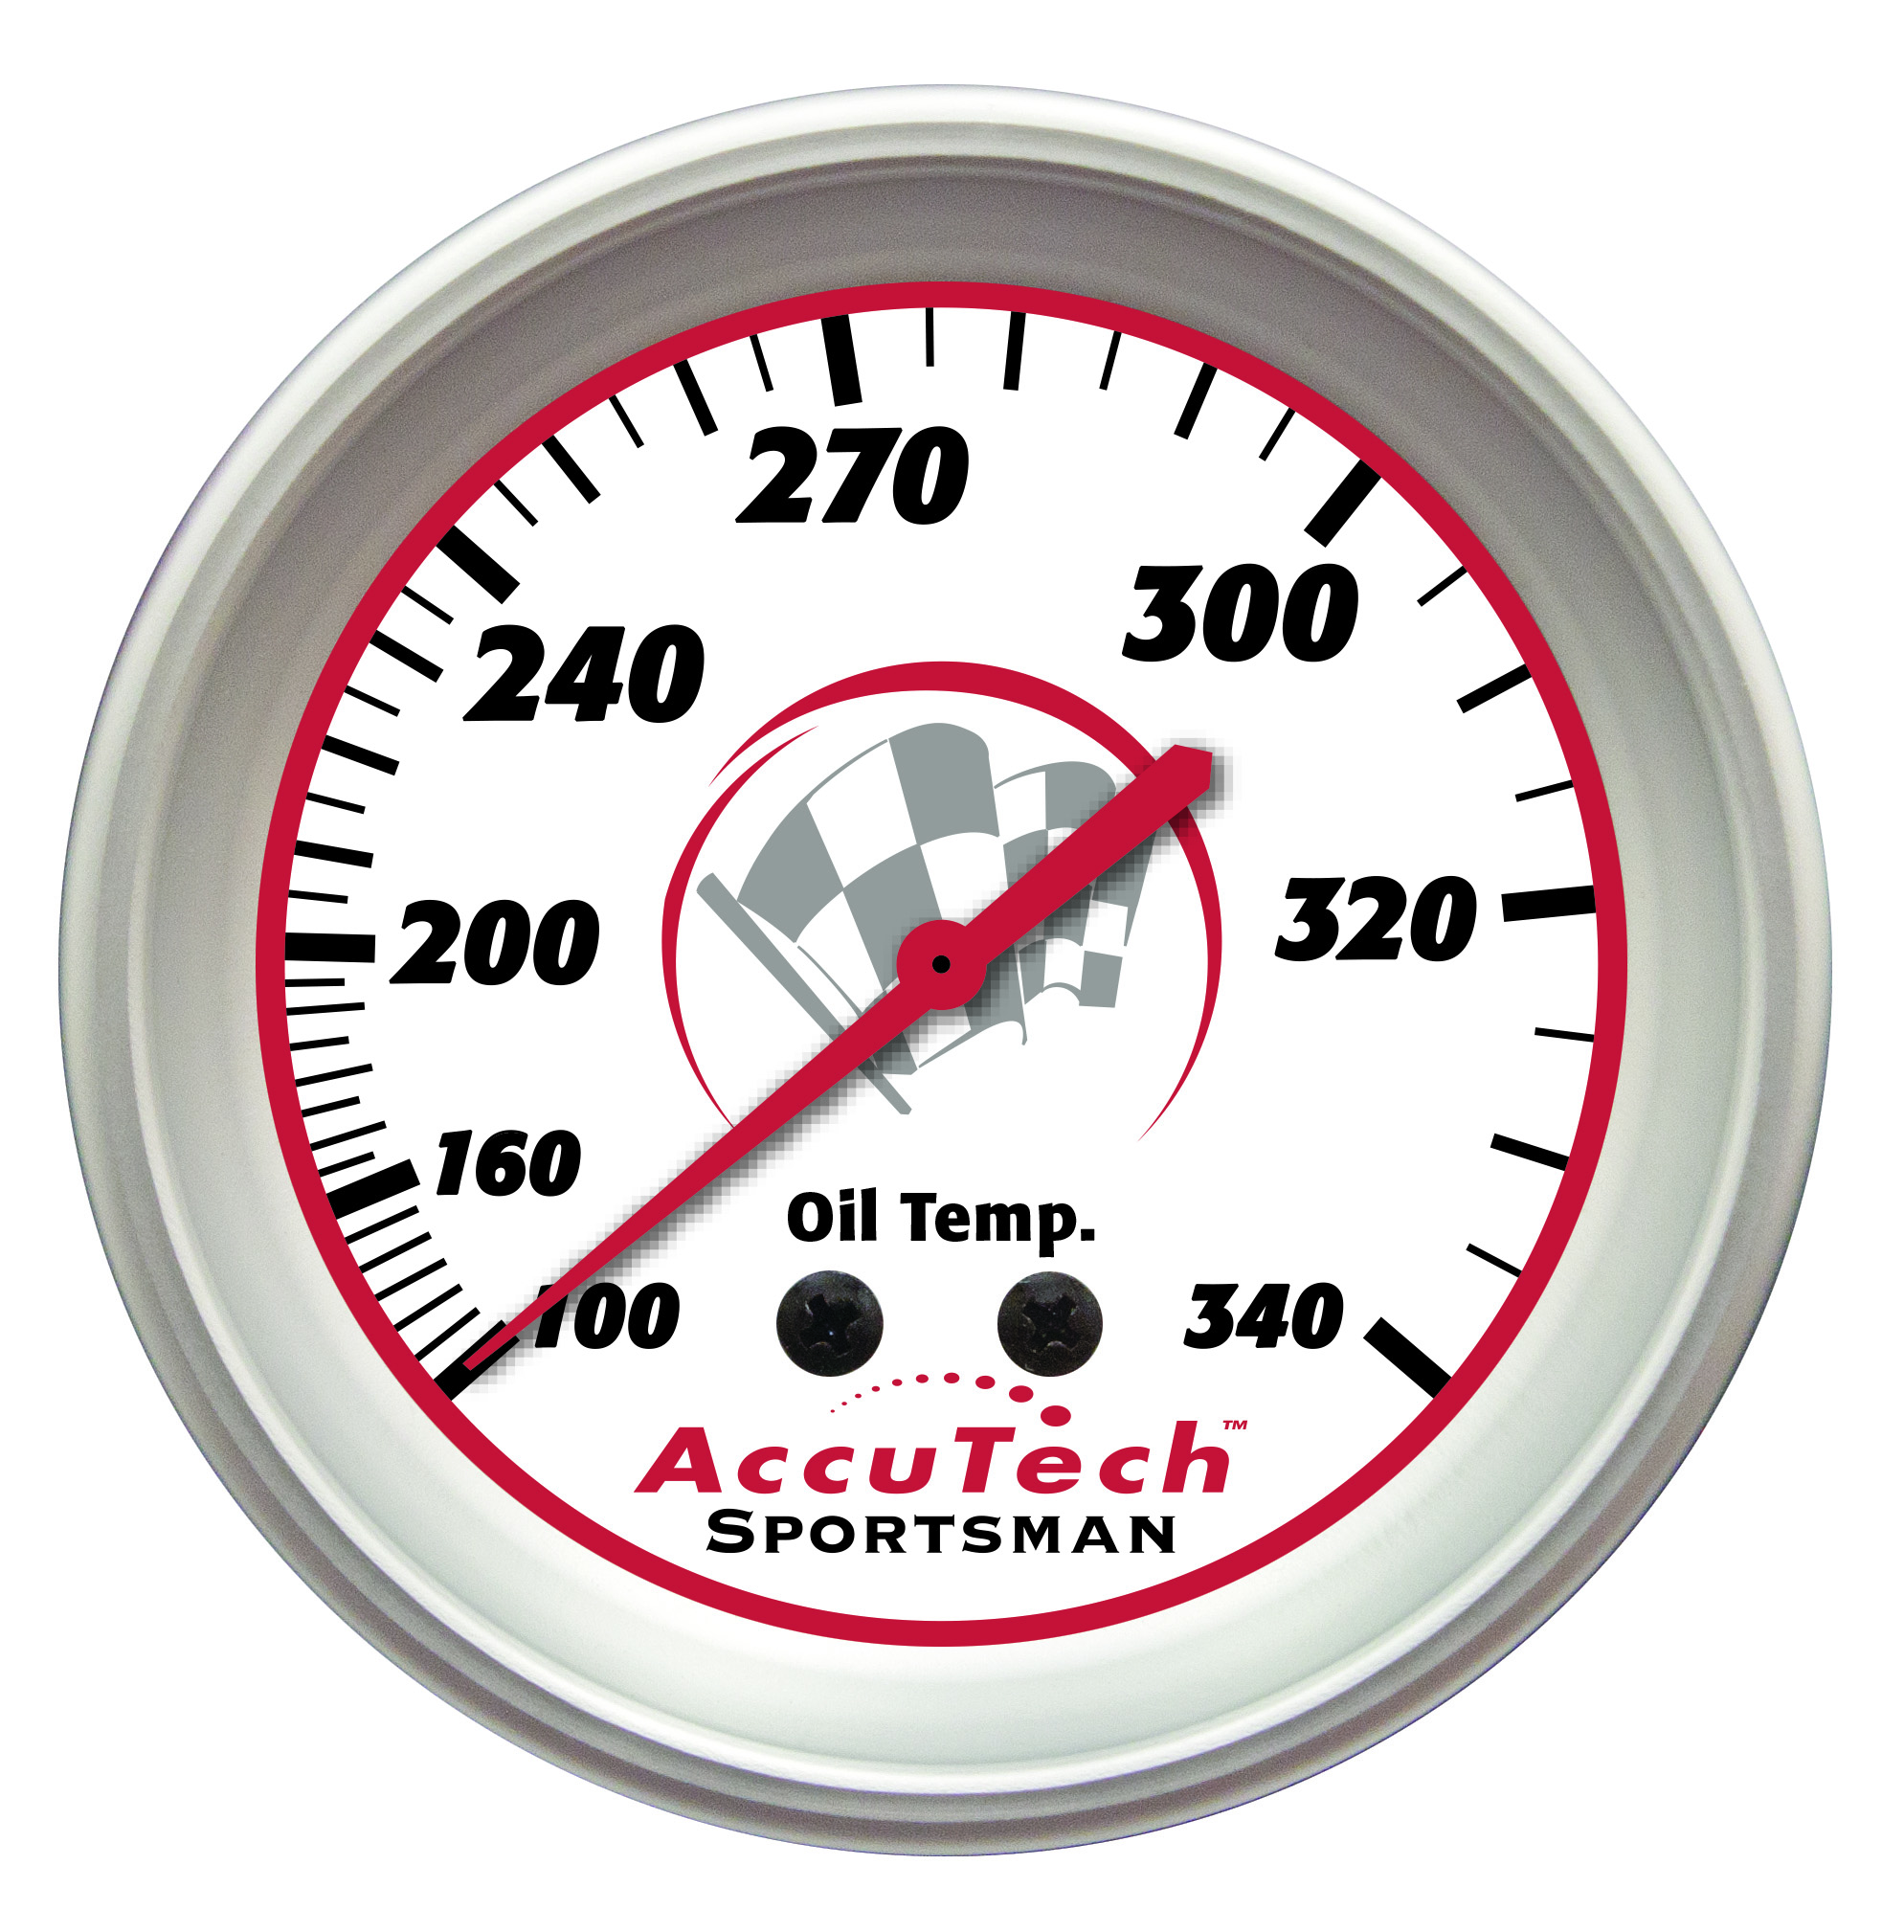 Sportsman™ Gauge Oil Temp. 100-340